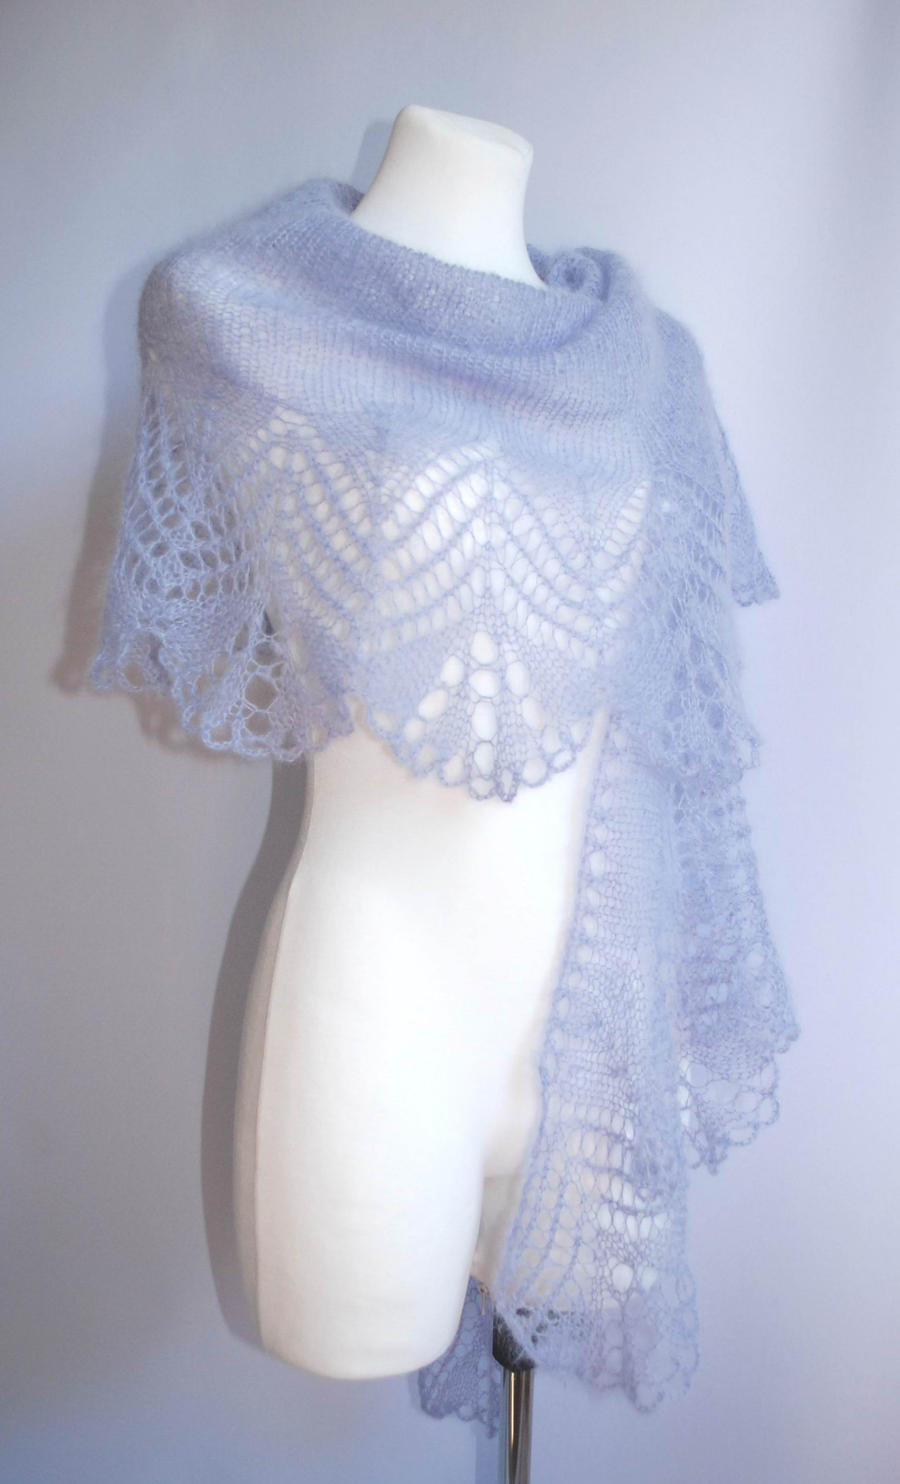 Lavender hand knitted lace shawl by NitkaAG